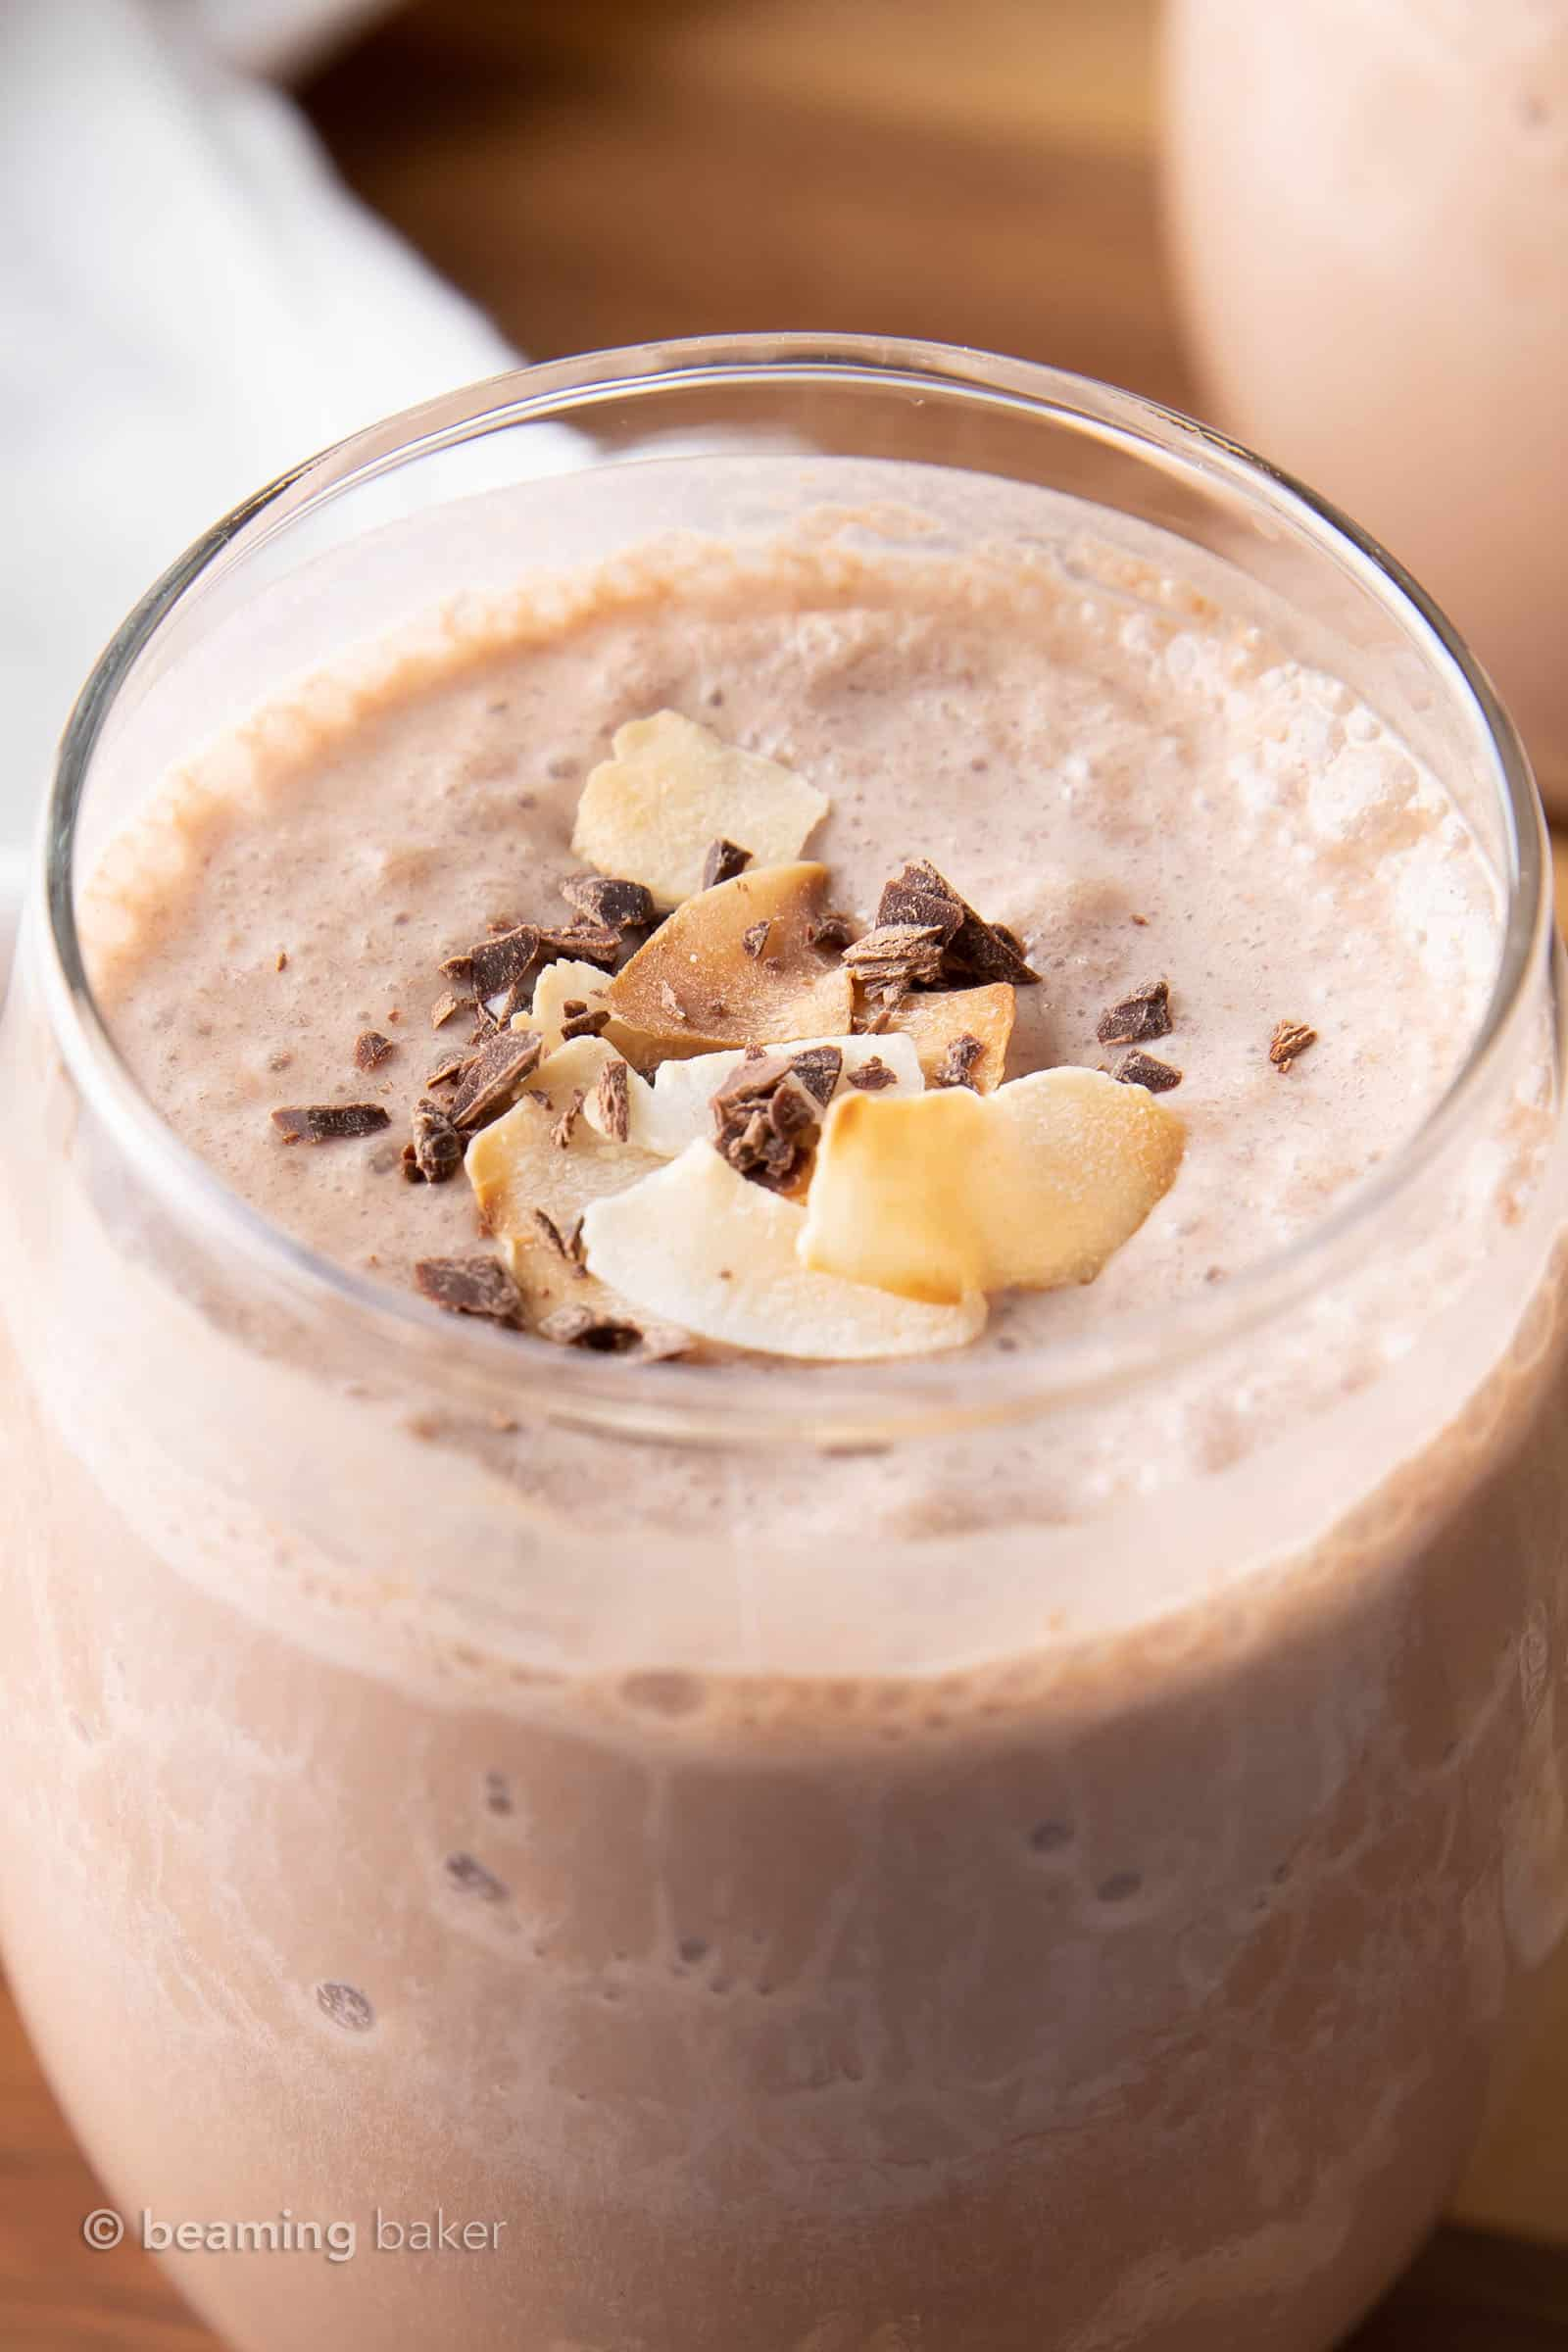 Coconut Chocolate Keto Smoothie: this keto protein smoothie recipe is delicious, easy to make & Low Carb! Just 6 ingredients for 12 grams of protein and only 3 net carbs. #LowCarb #HighProtein #Vegan #Smoothie | Recipe at BeamingBaker.com